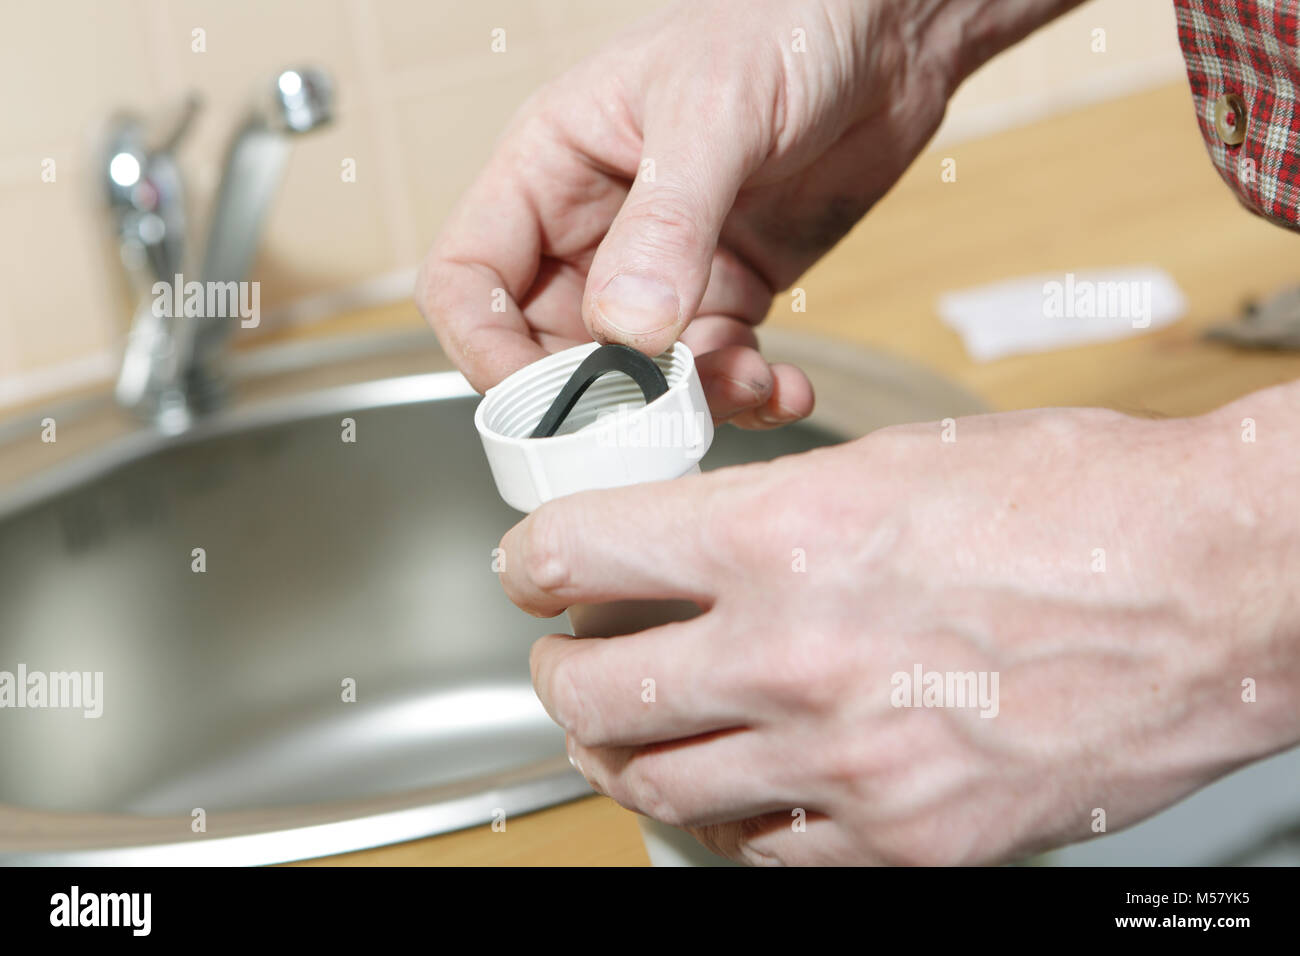 Plumber installing a rubber washer to the sewer pipe of a drain for a kitchen sink - Stock Image